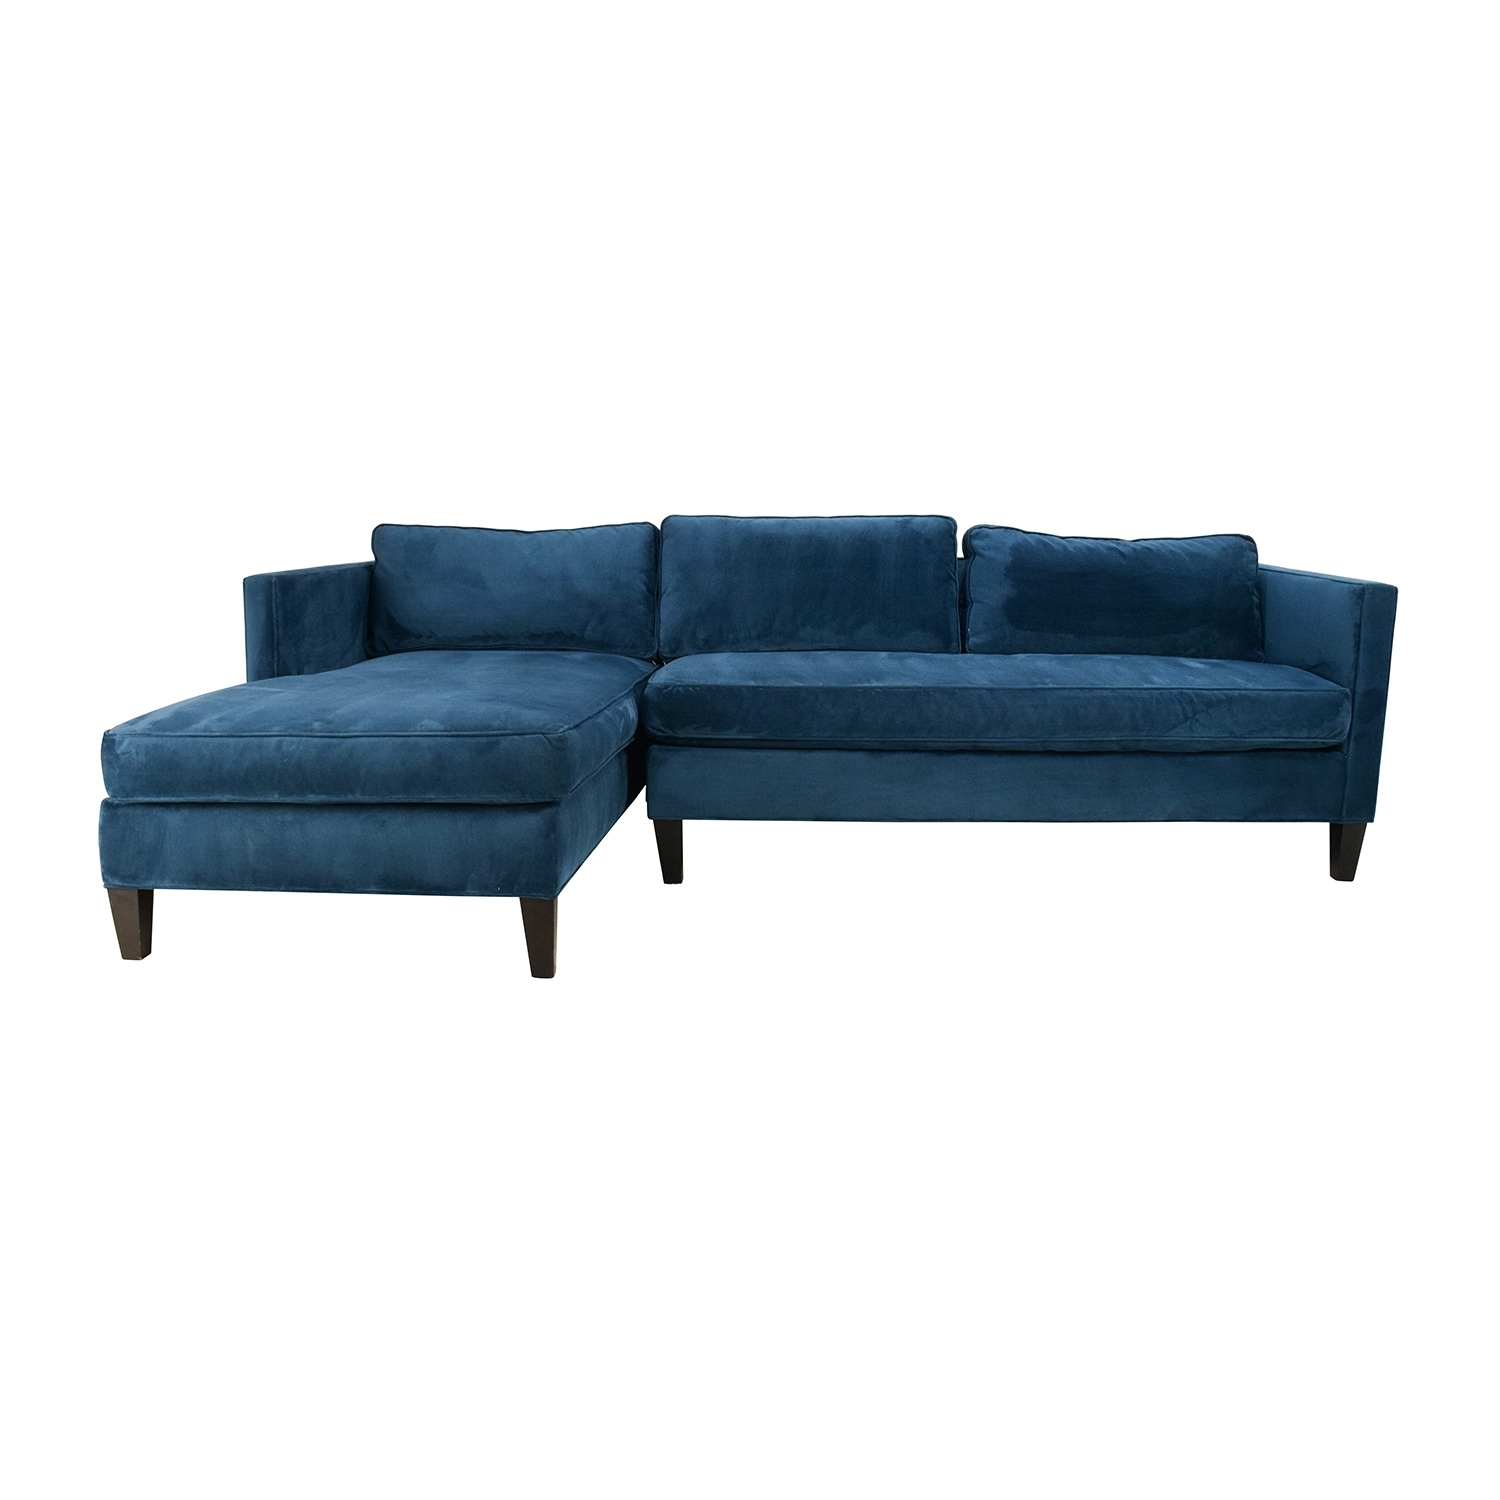 67% Off - West Elm West Elm Dunham Sectional Sofa / Sofas with regard to West Elm Sectional Sofas